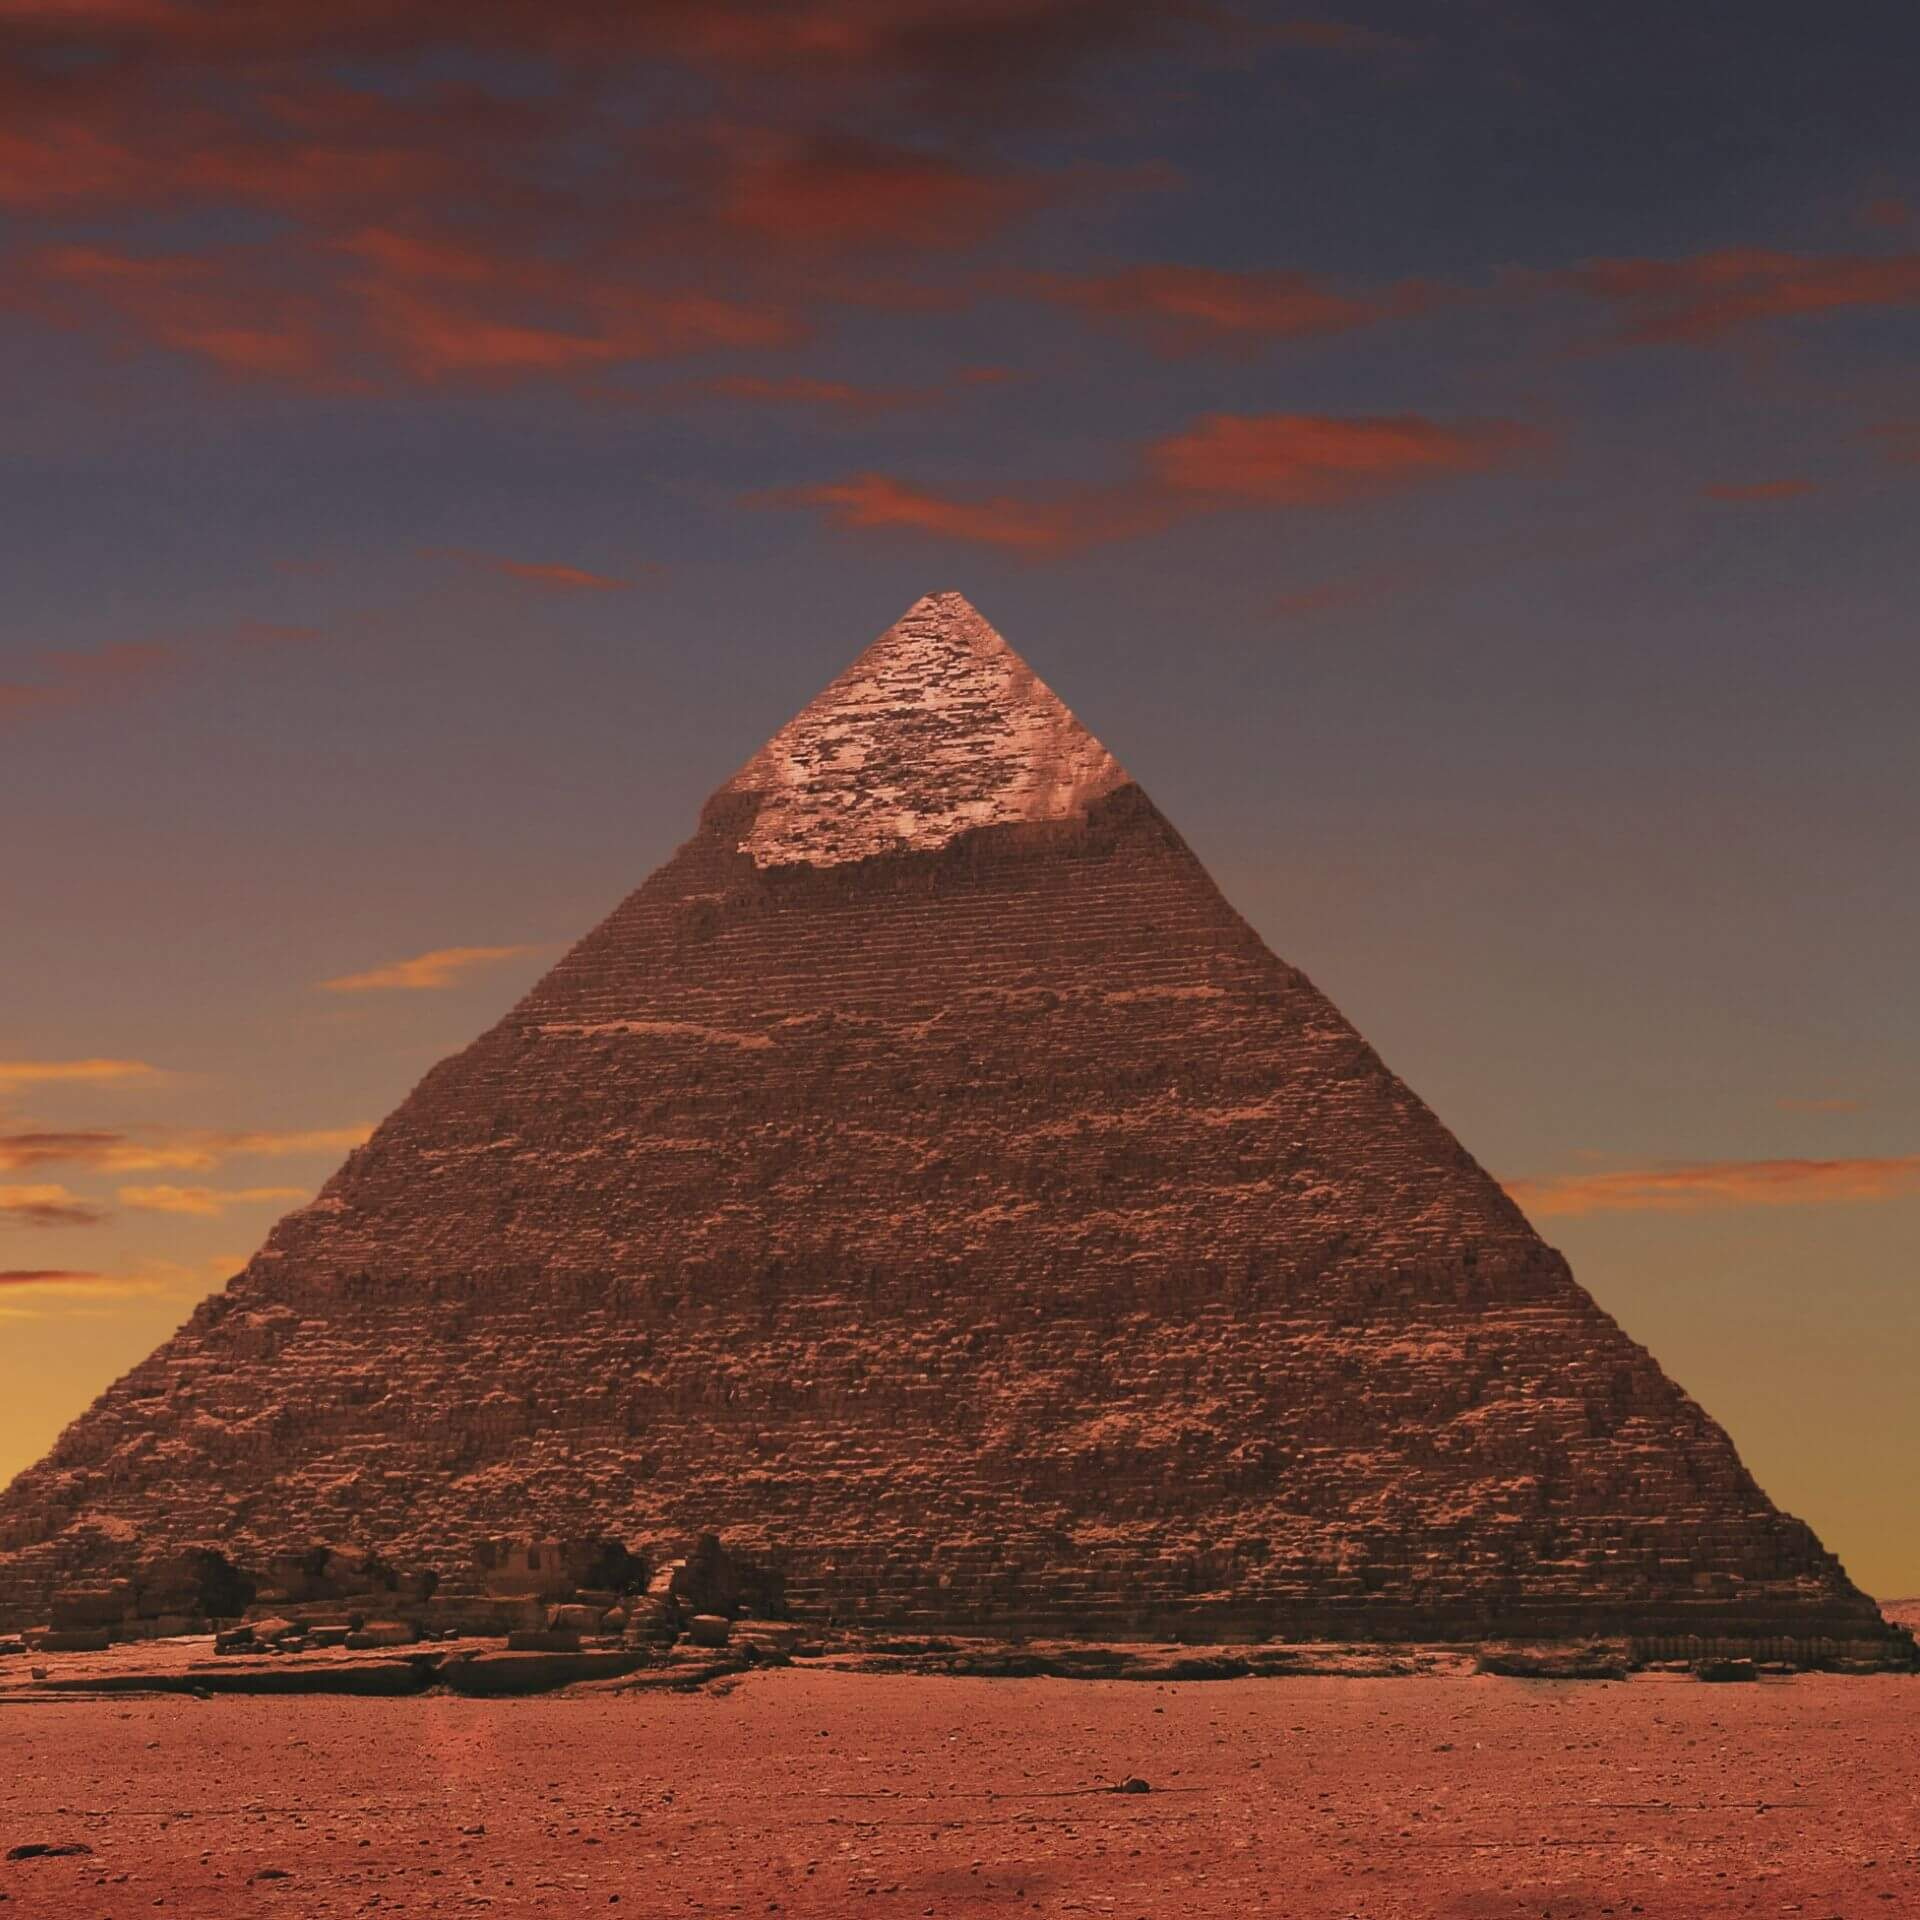 How to Format a Blog Post: Your post should be formatted to look like this Egyptian pyramid.